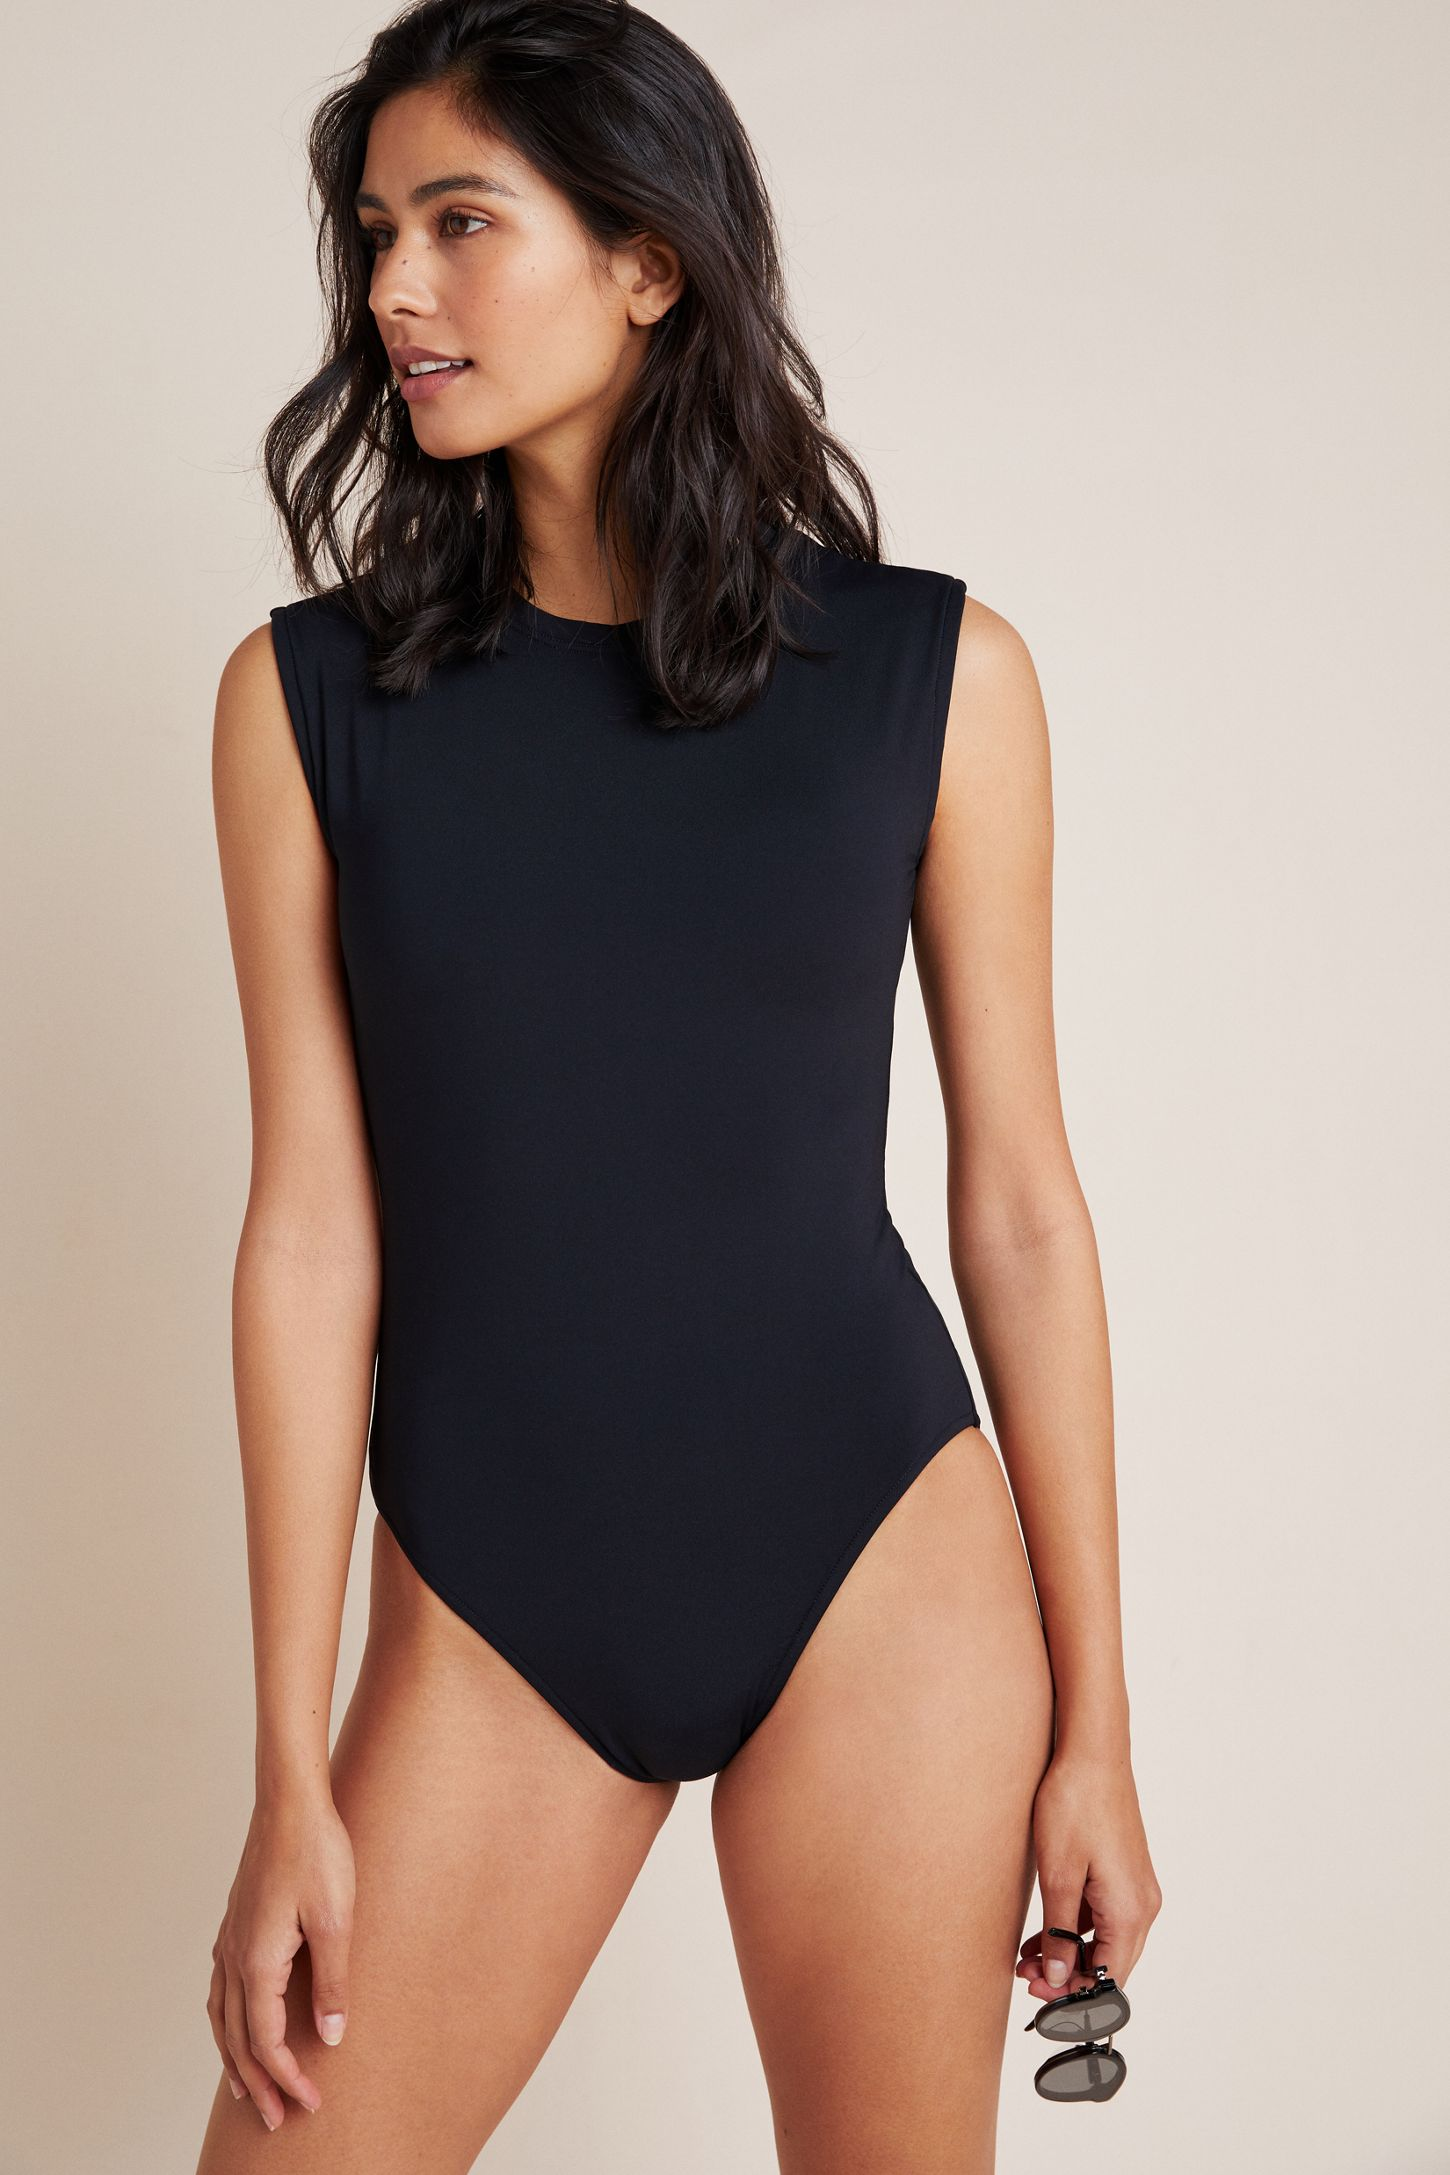 100494539a8 Seafolly Active One-Piece Swimsuit | Anthropologie